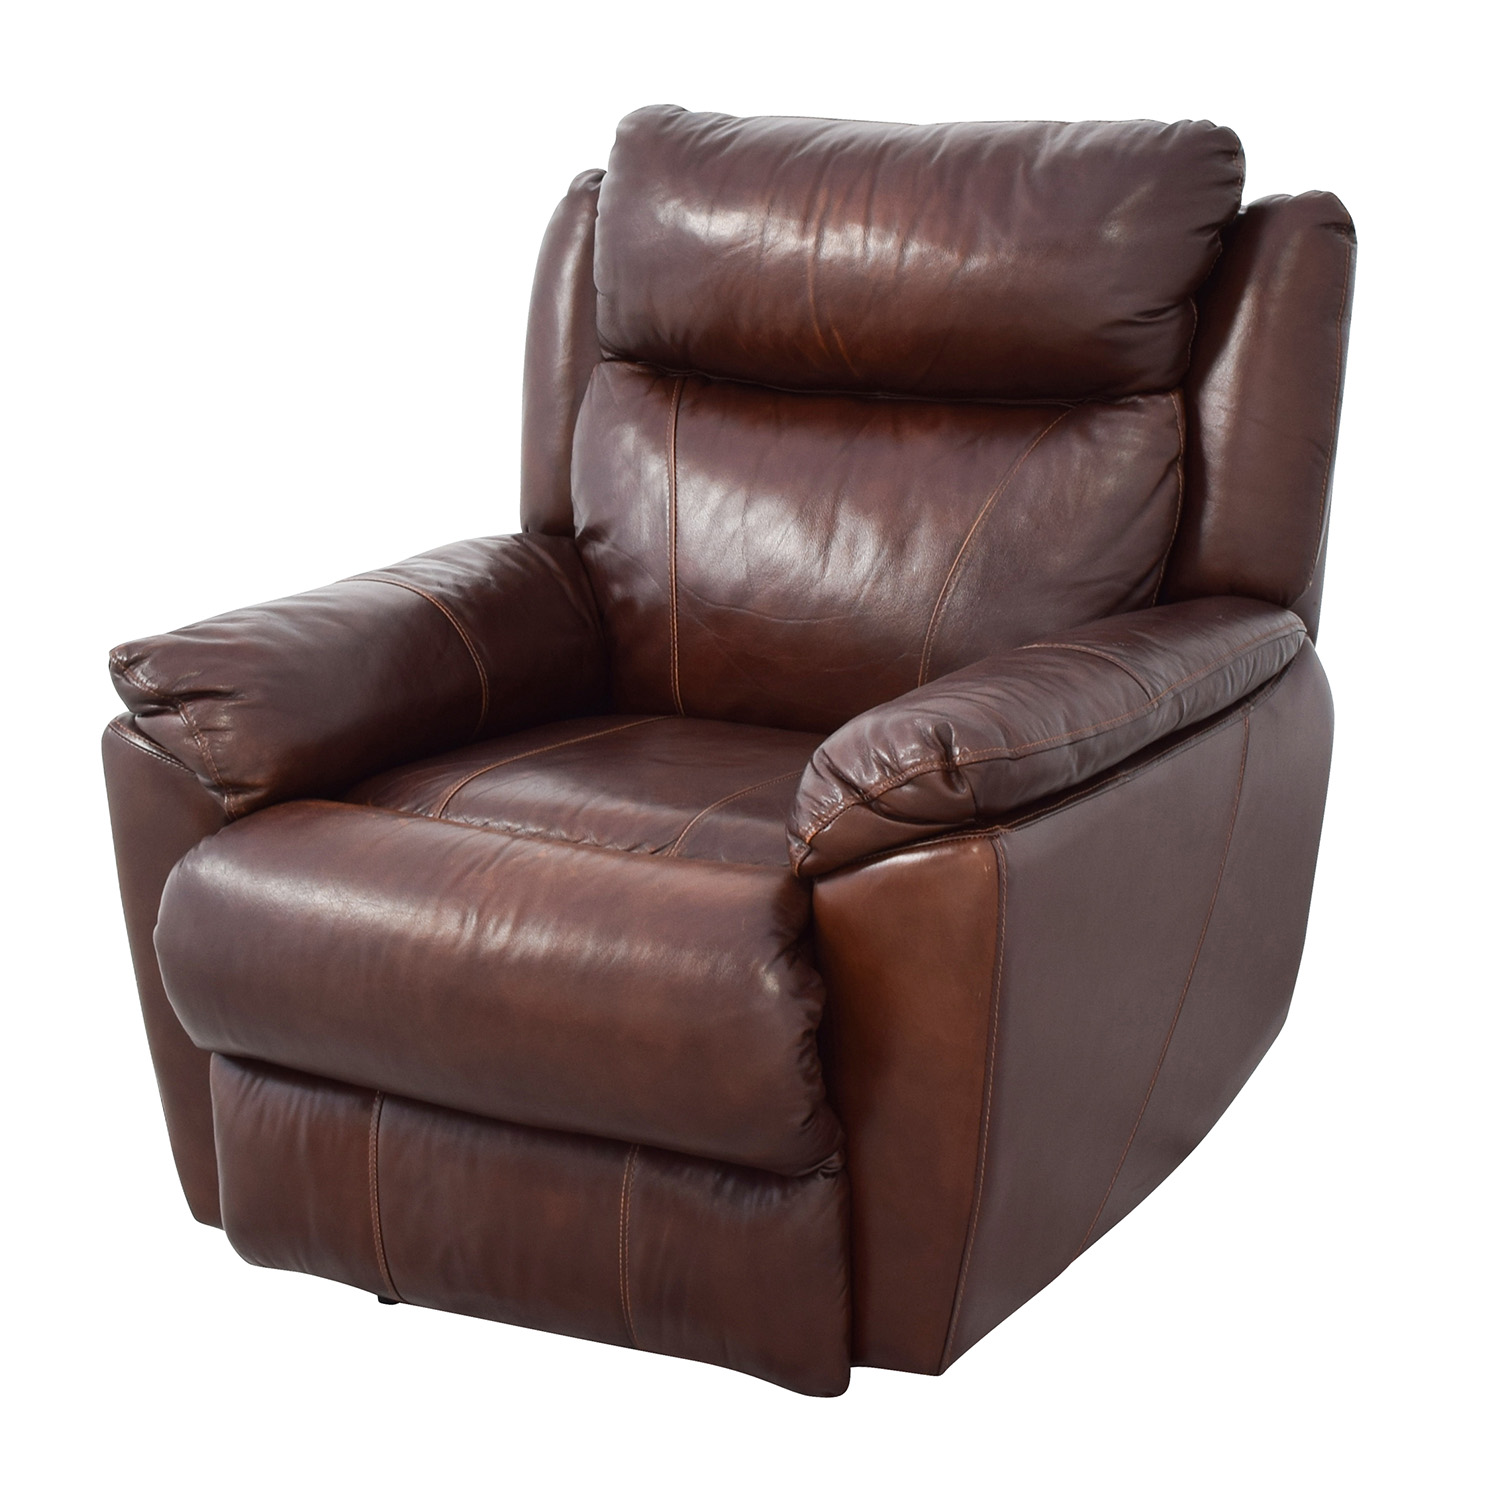 Macys Brown Leather Power Recliner Macys